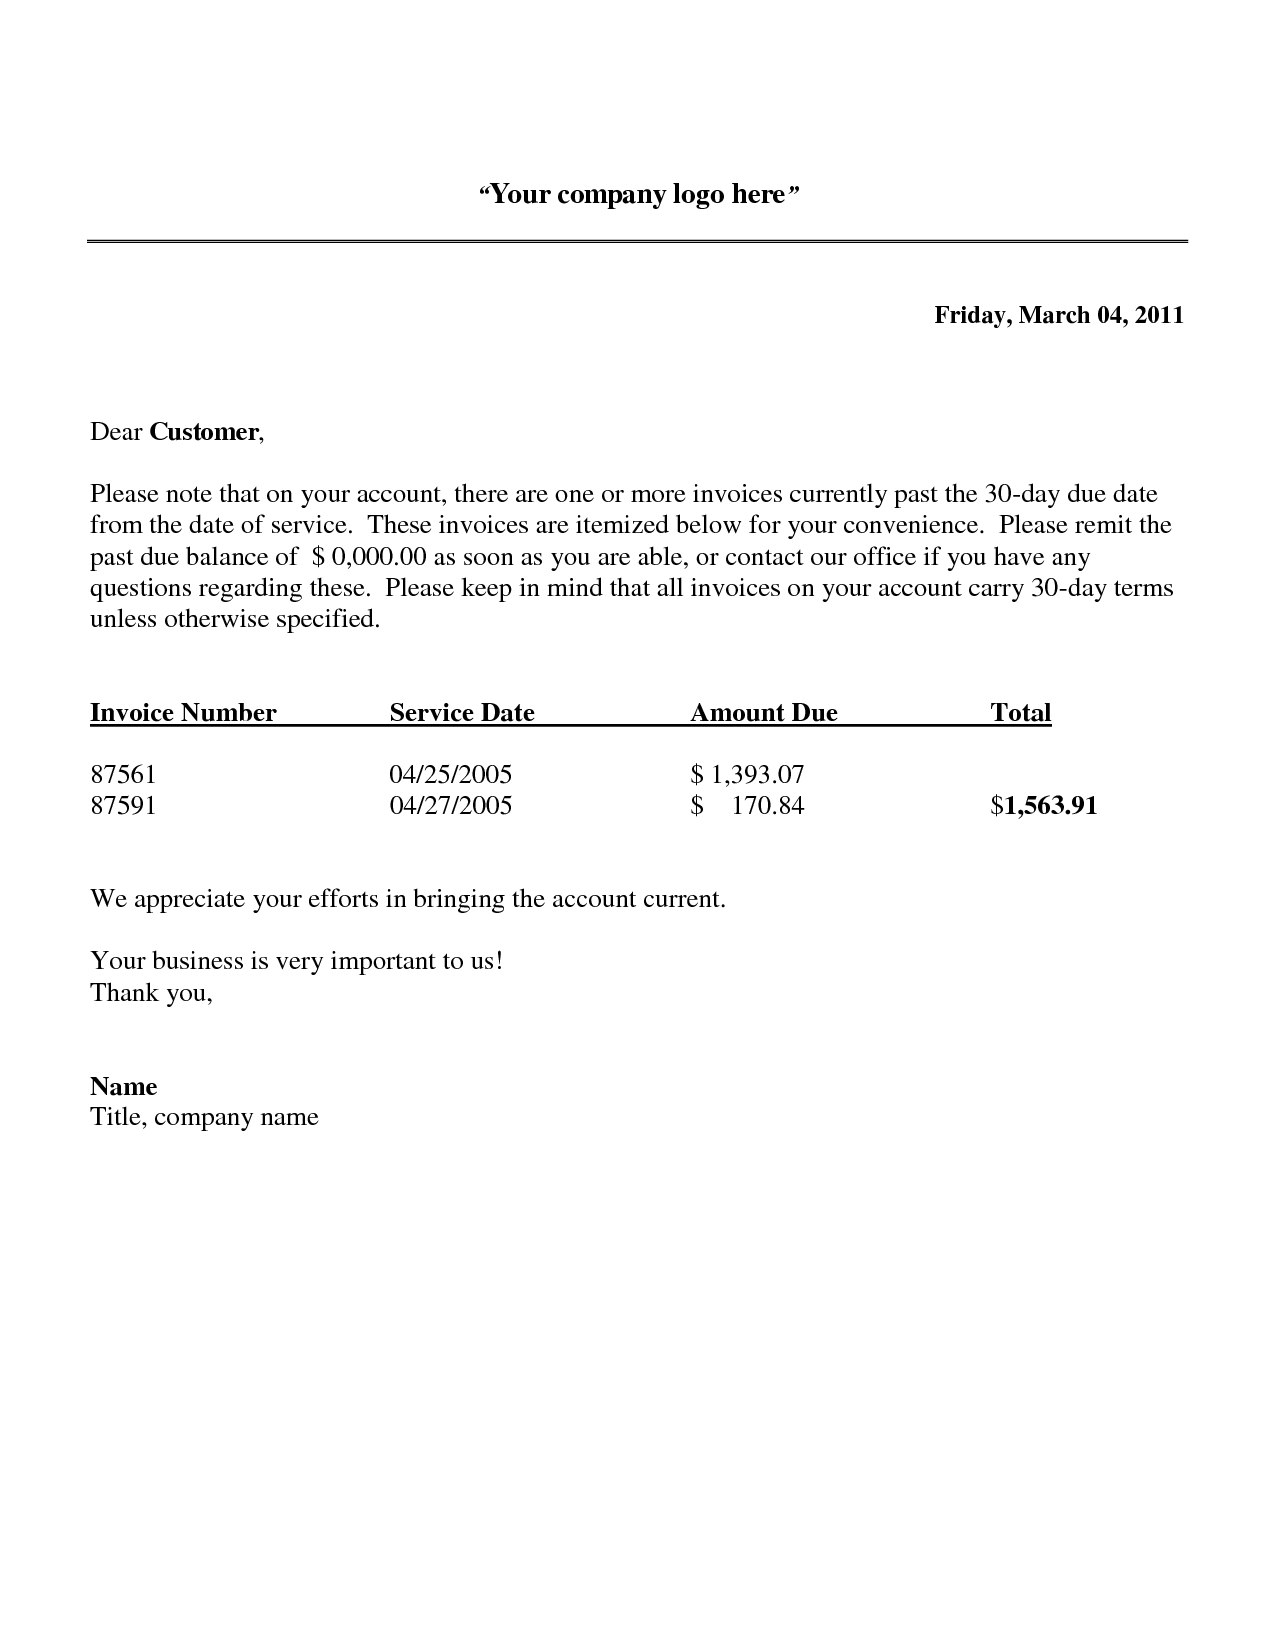 Professional Invoice Letter Template Business Hours Word Refrence Pertaining To Business Hours Template Word